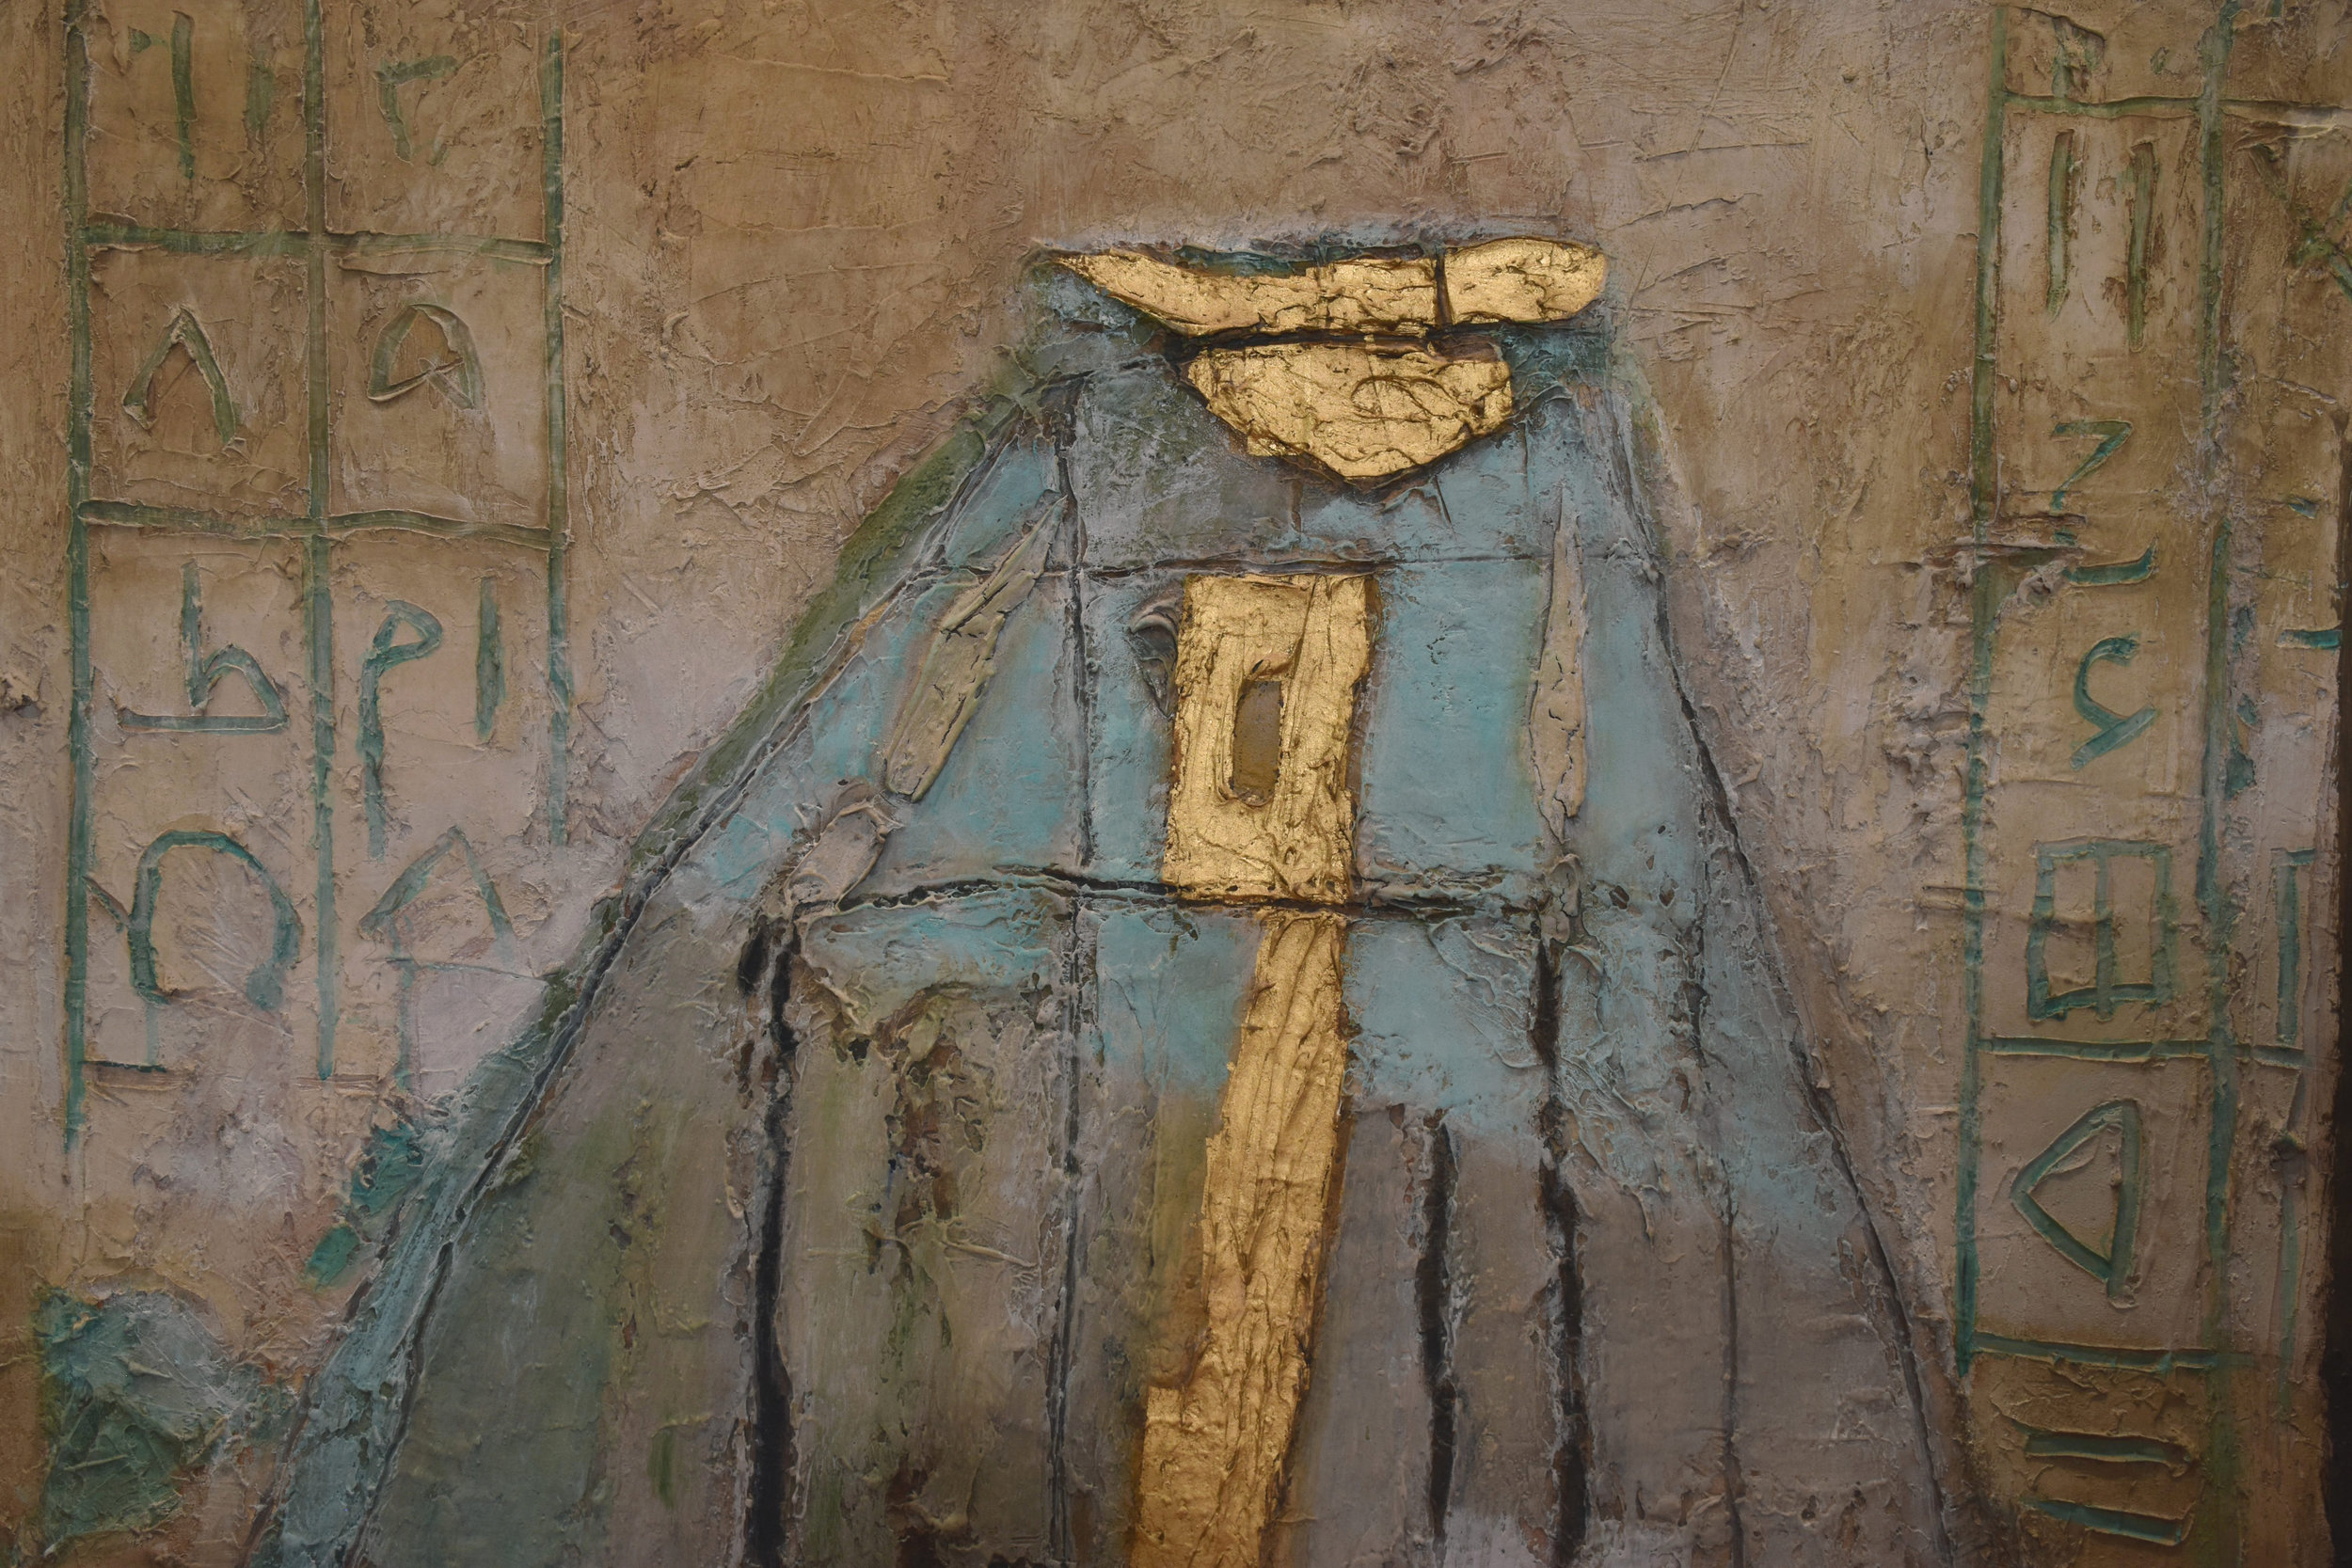 Ahmad Sadali, Gunungan, oil on nylon canvas, 206 x 150 cm, 1976